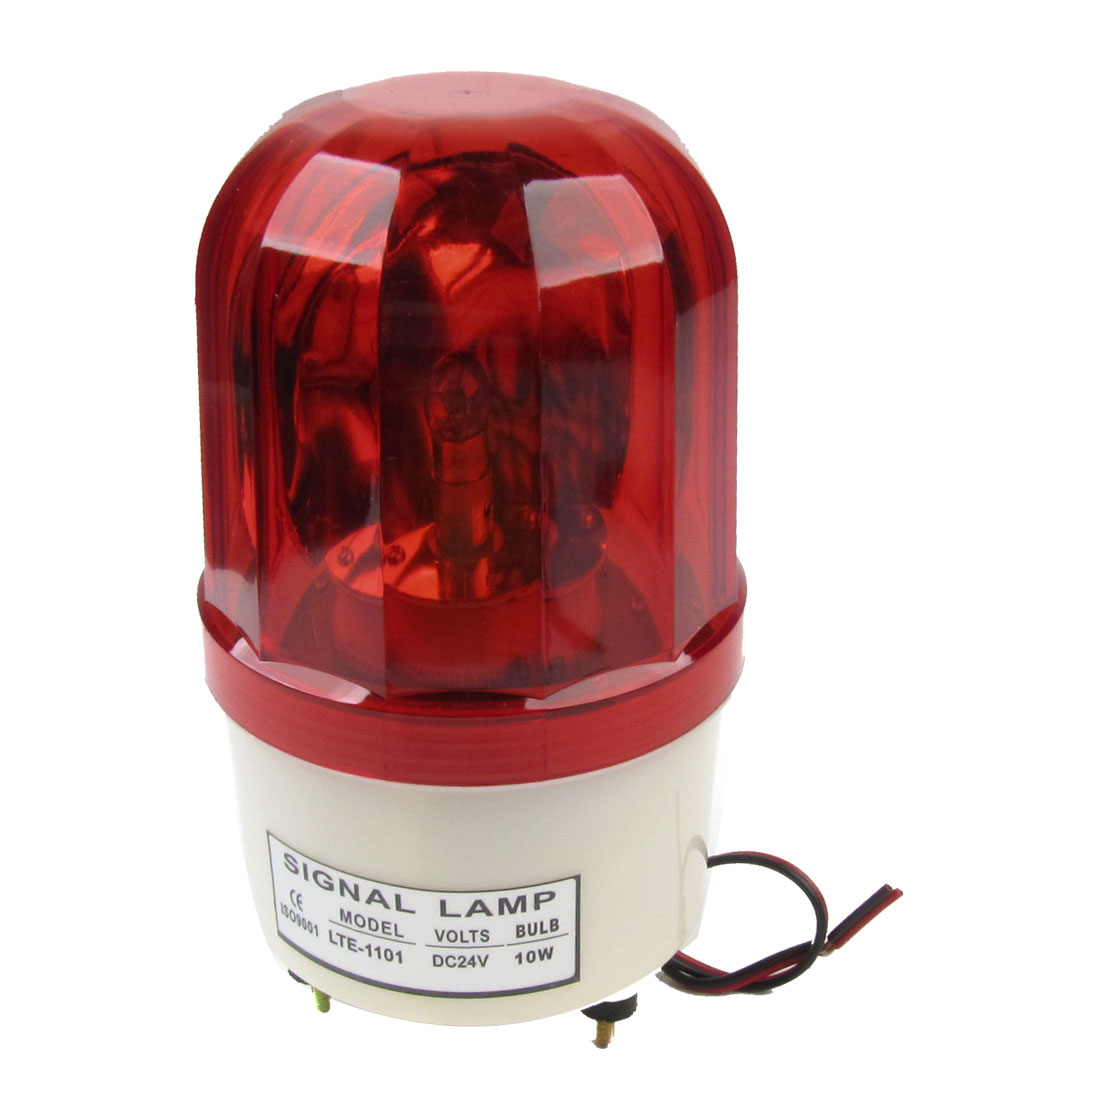 DC24V 10W Dome Case Industrial Rotary Signal Light Red LTE-1101J